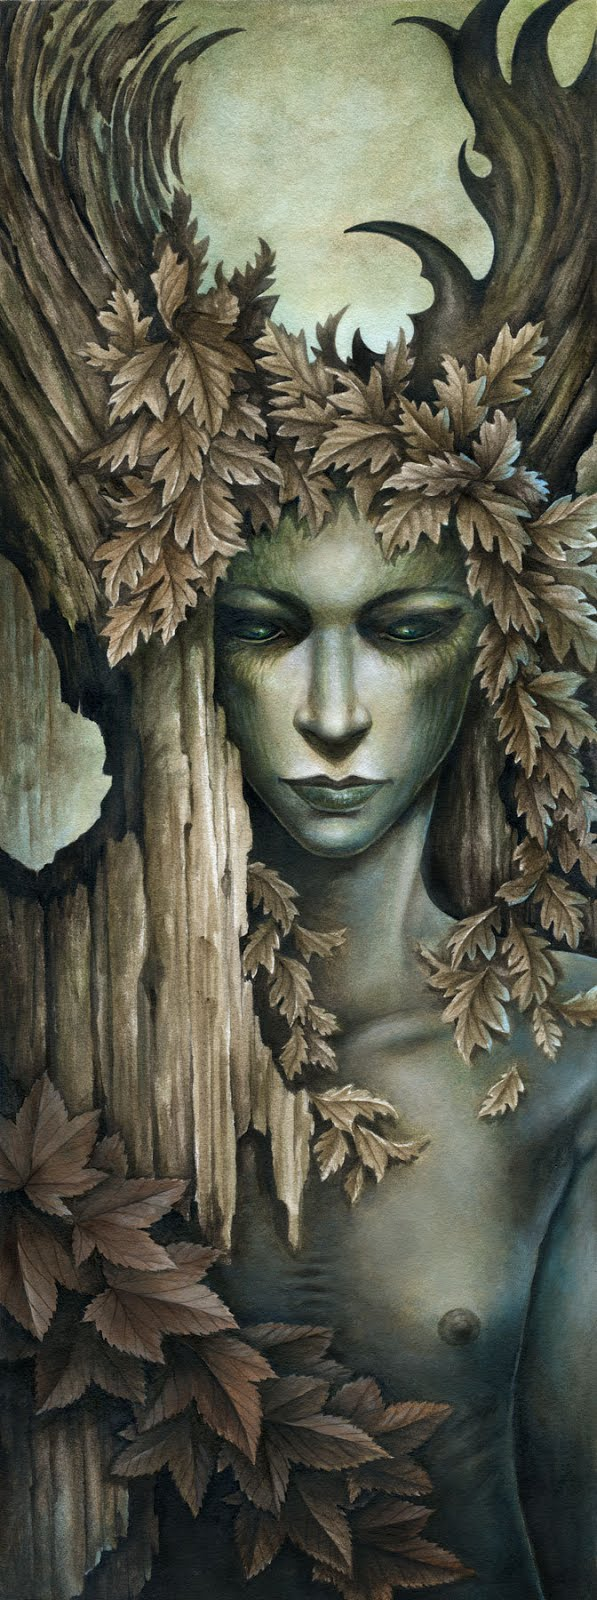 WOOD ELF BY MARKELLI